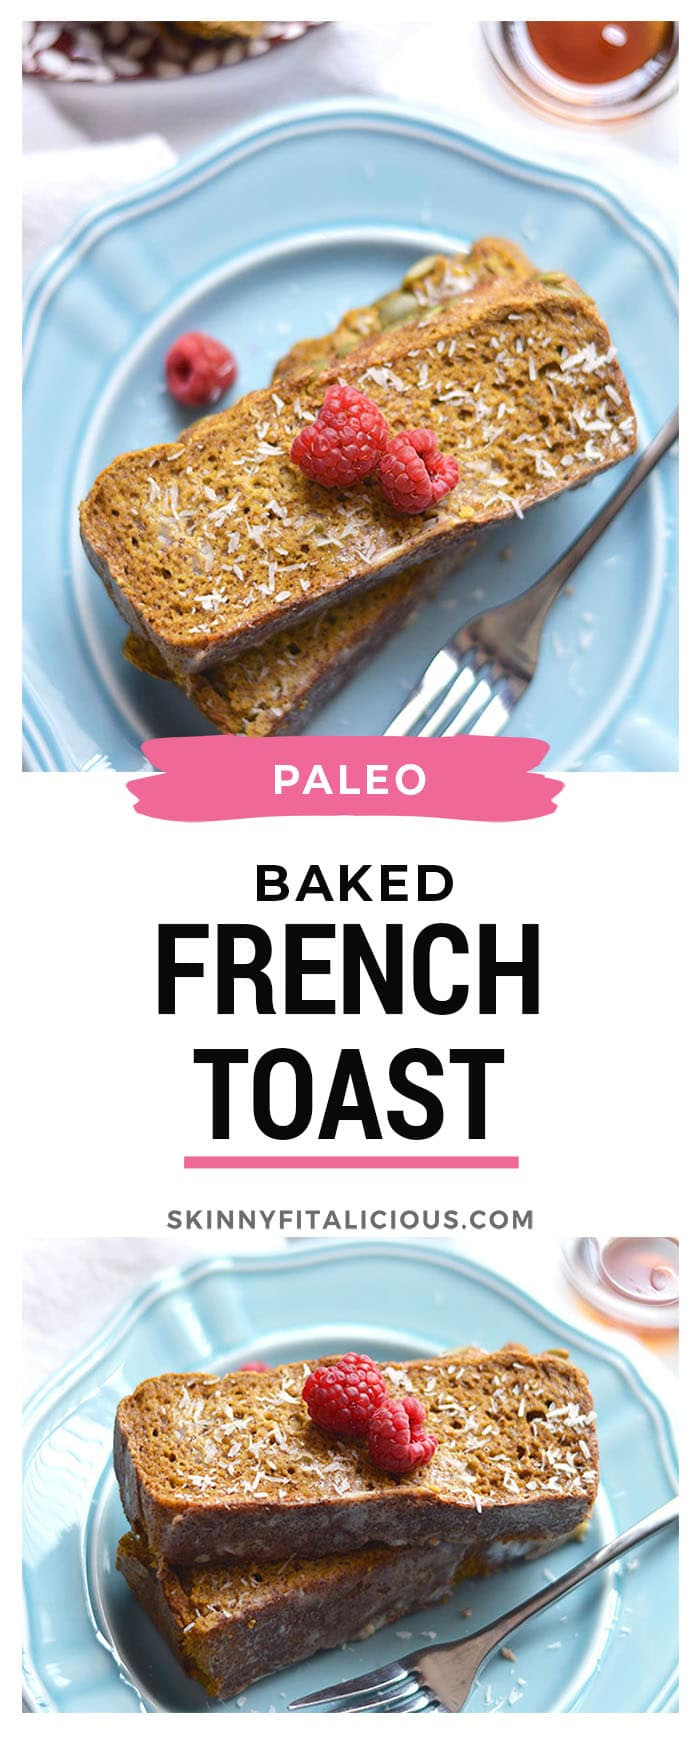 This Healthy Cinnamon Baked French Toast is baked and better for you! Made with sugar free pumpkin bread and warm spices. A nutritious breakfast to start your day! Paleo + Gluten Free + Low Calorie